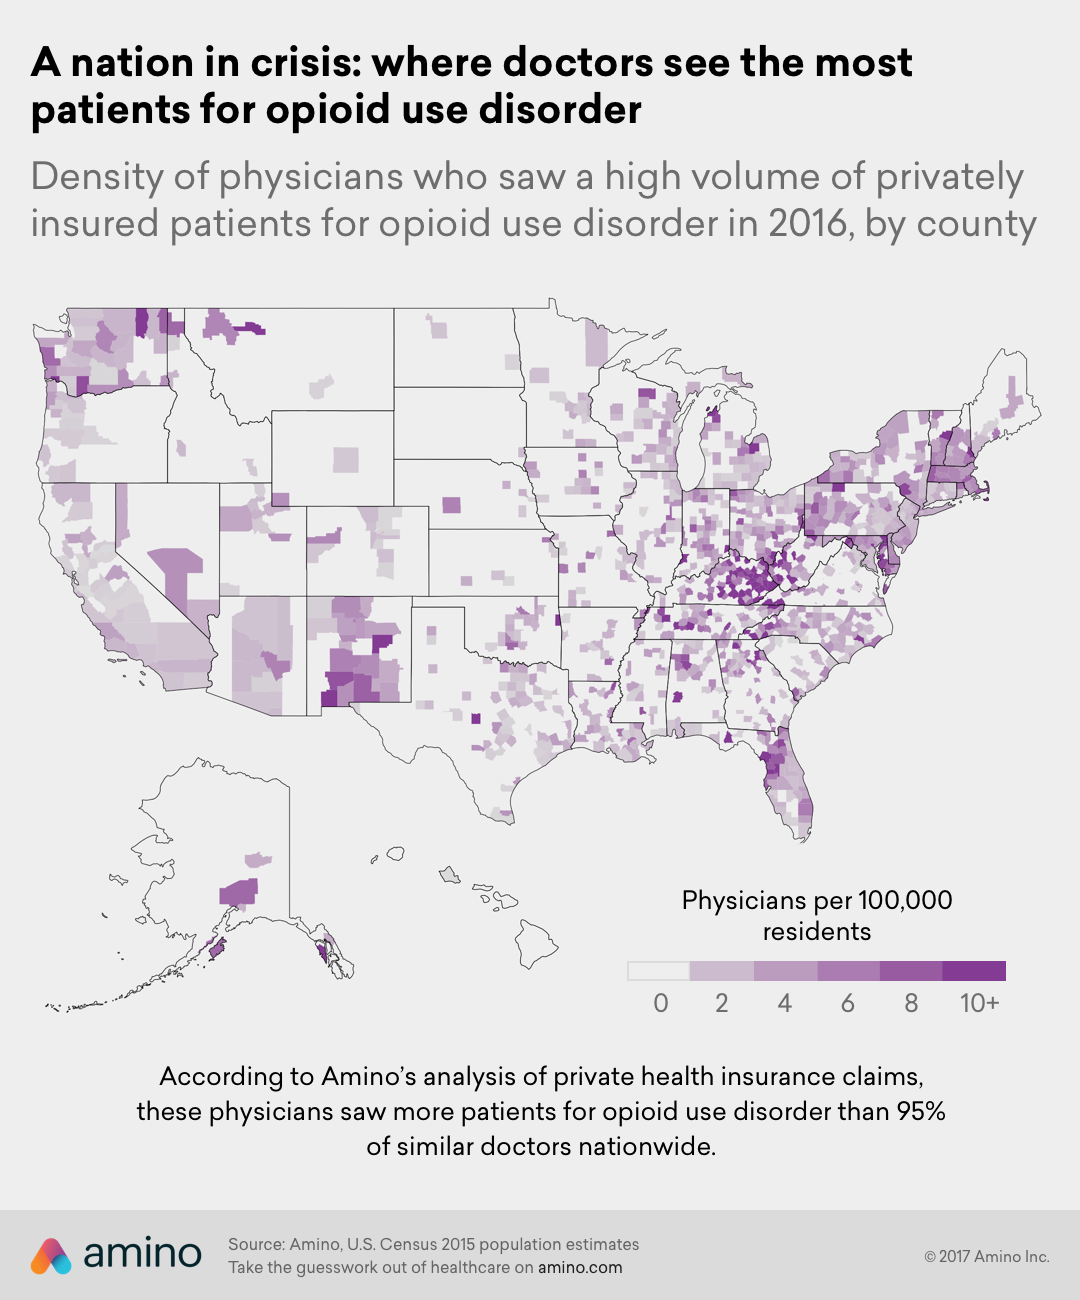 A nation in crisis: where doctors see the most patients for opioid use disorder